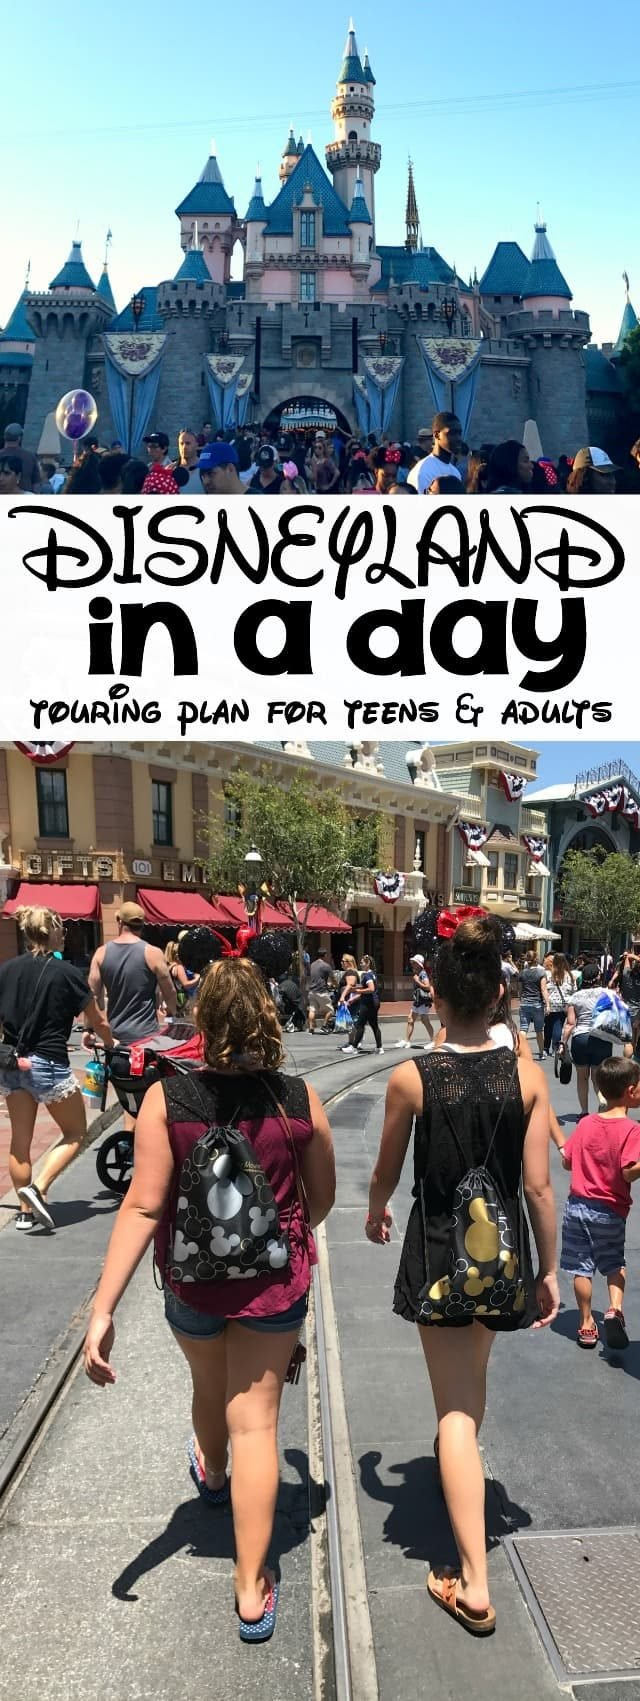 Disneyland in a Day! This one day Disneyland touring plan is perfect for teens and adults. It hits all the big rides and offers tips for how to get them all done before noon, even in summer!